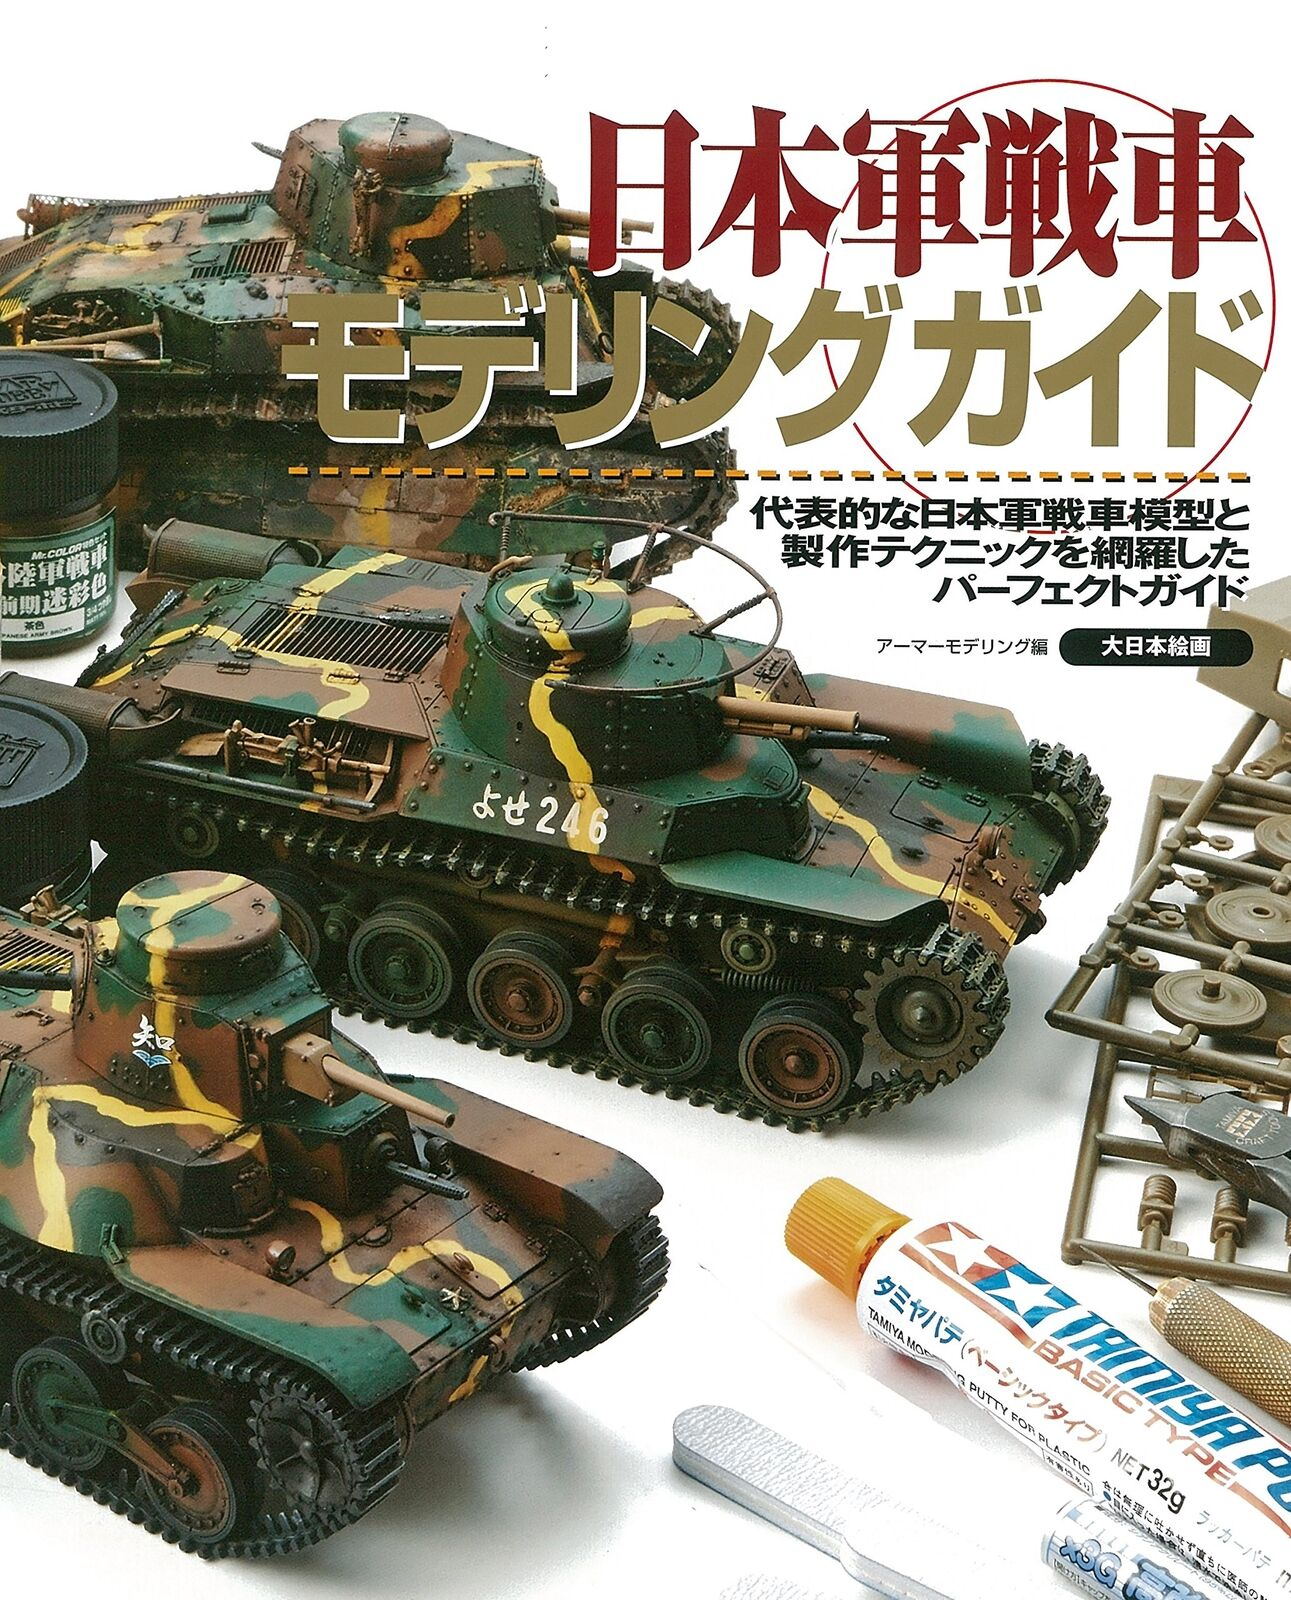 Japan Tanks Modeling Guide Model Kit Book